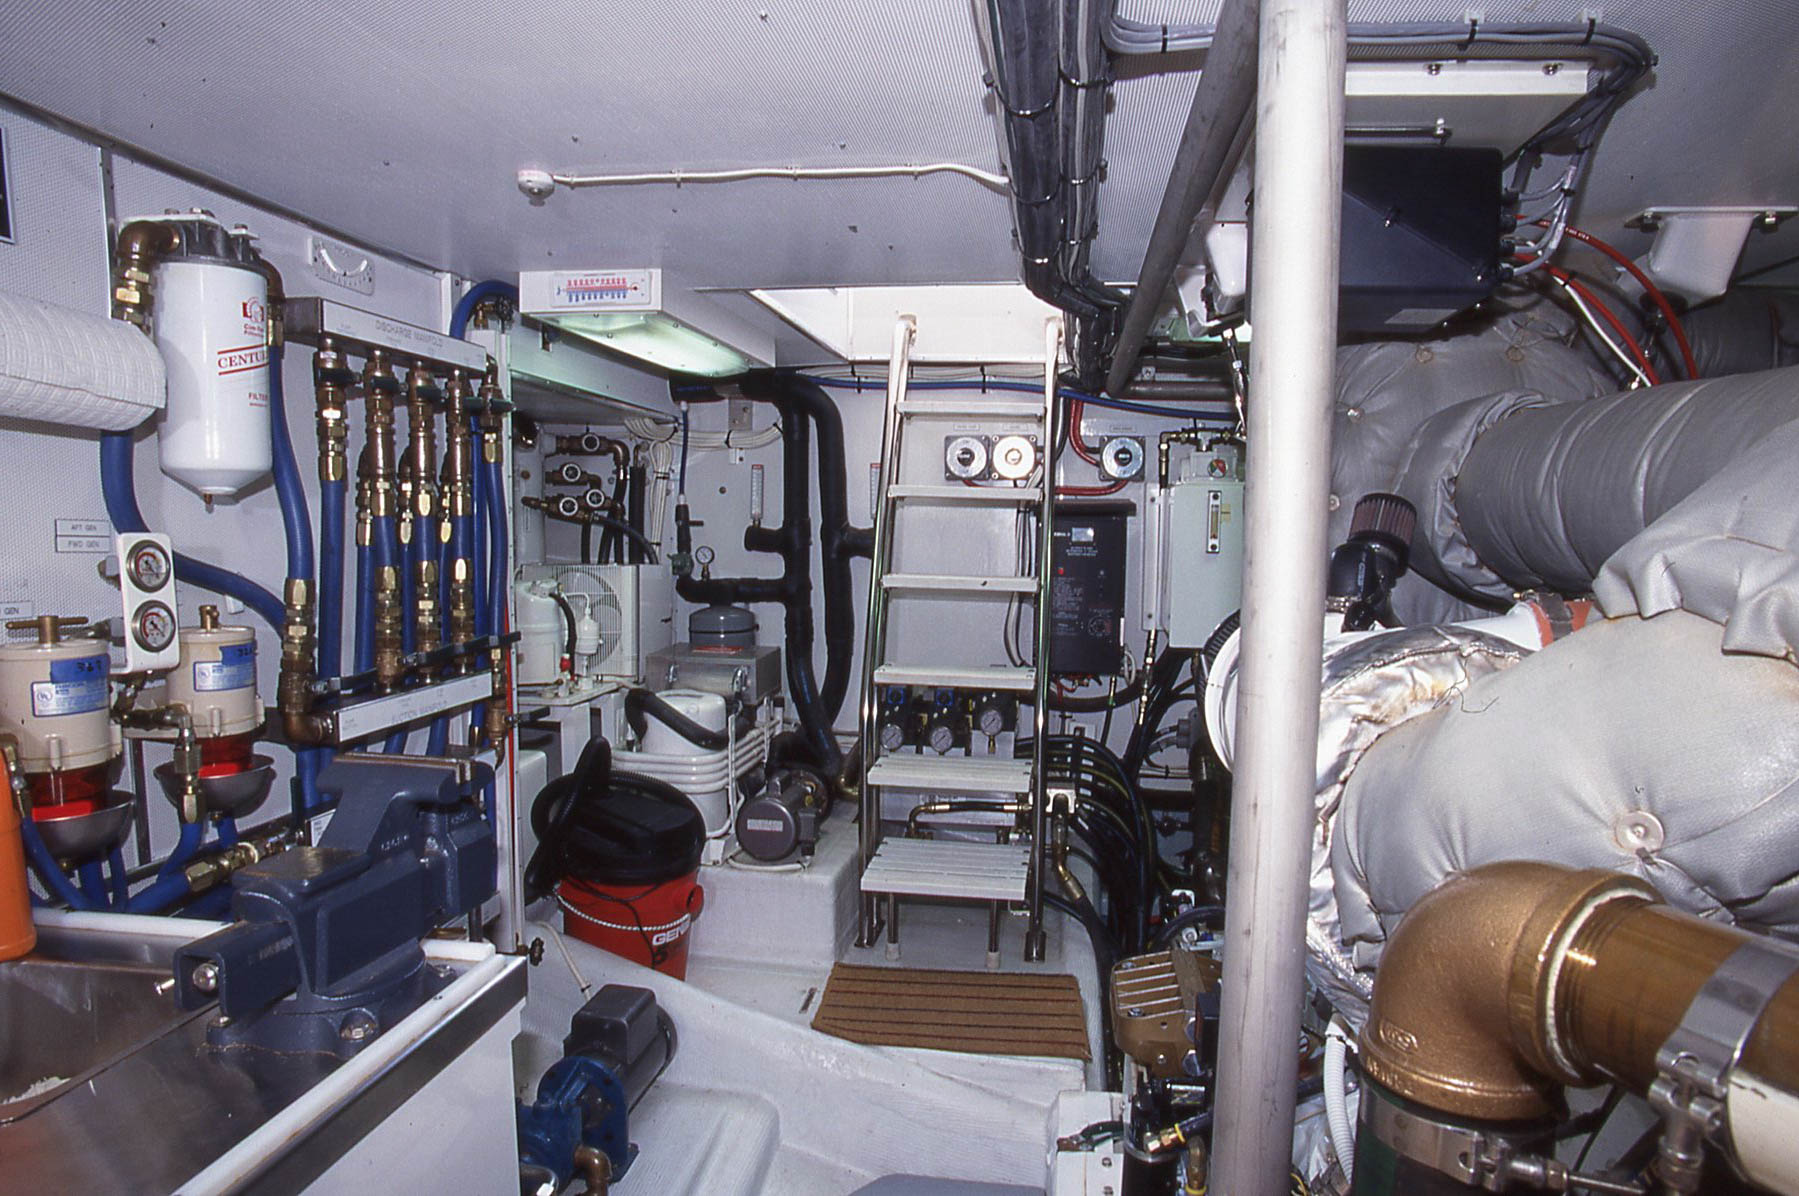 A   very professional engine room done by a builder familiar with the commercial fishing boats that work the waters off Alaska.